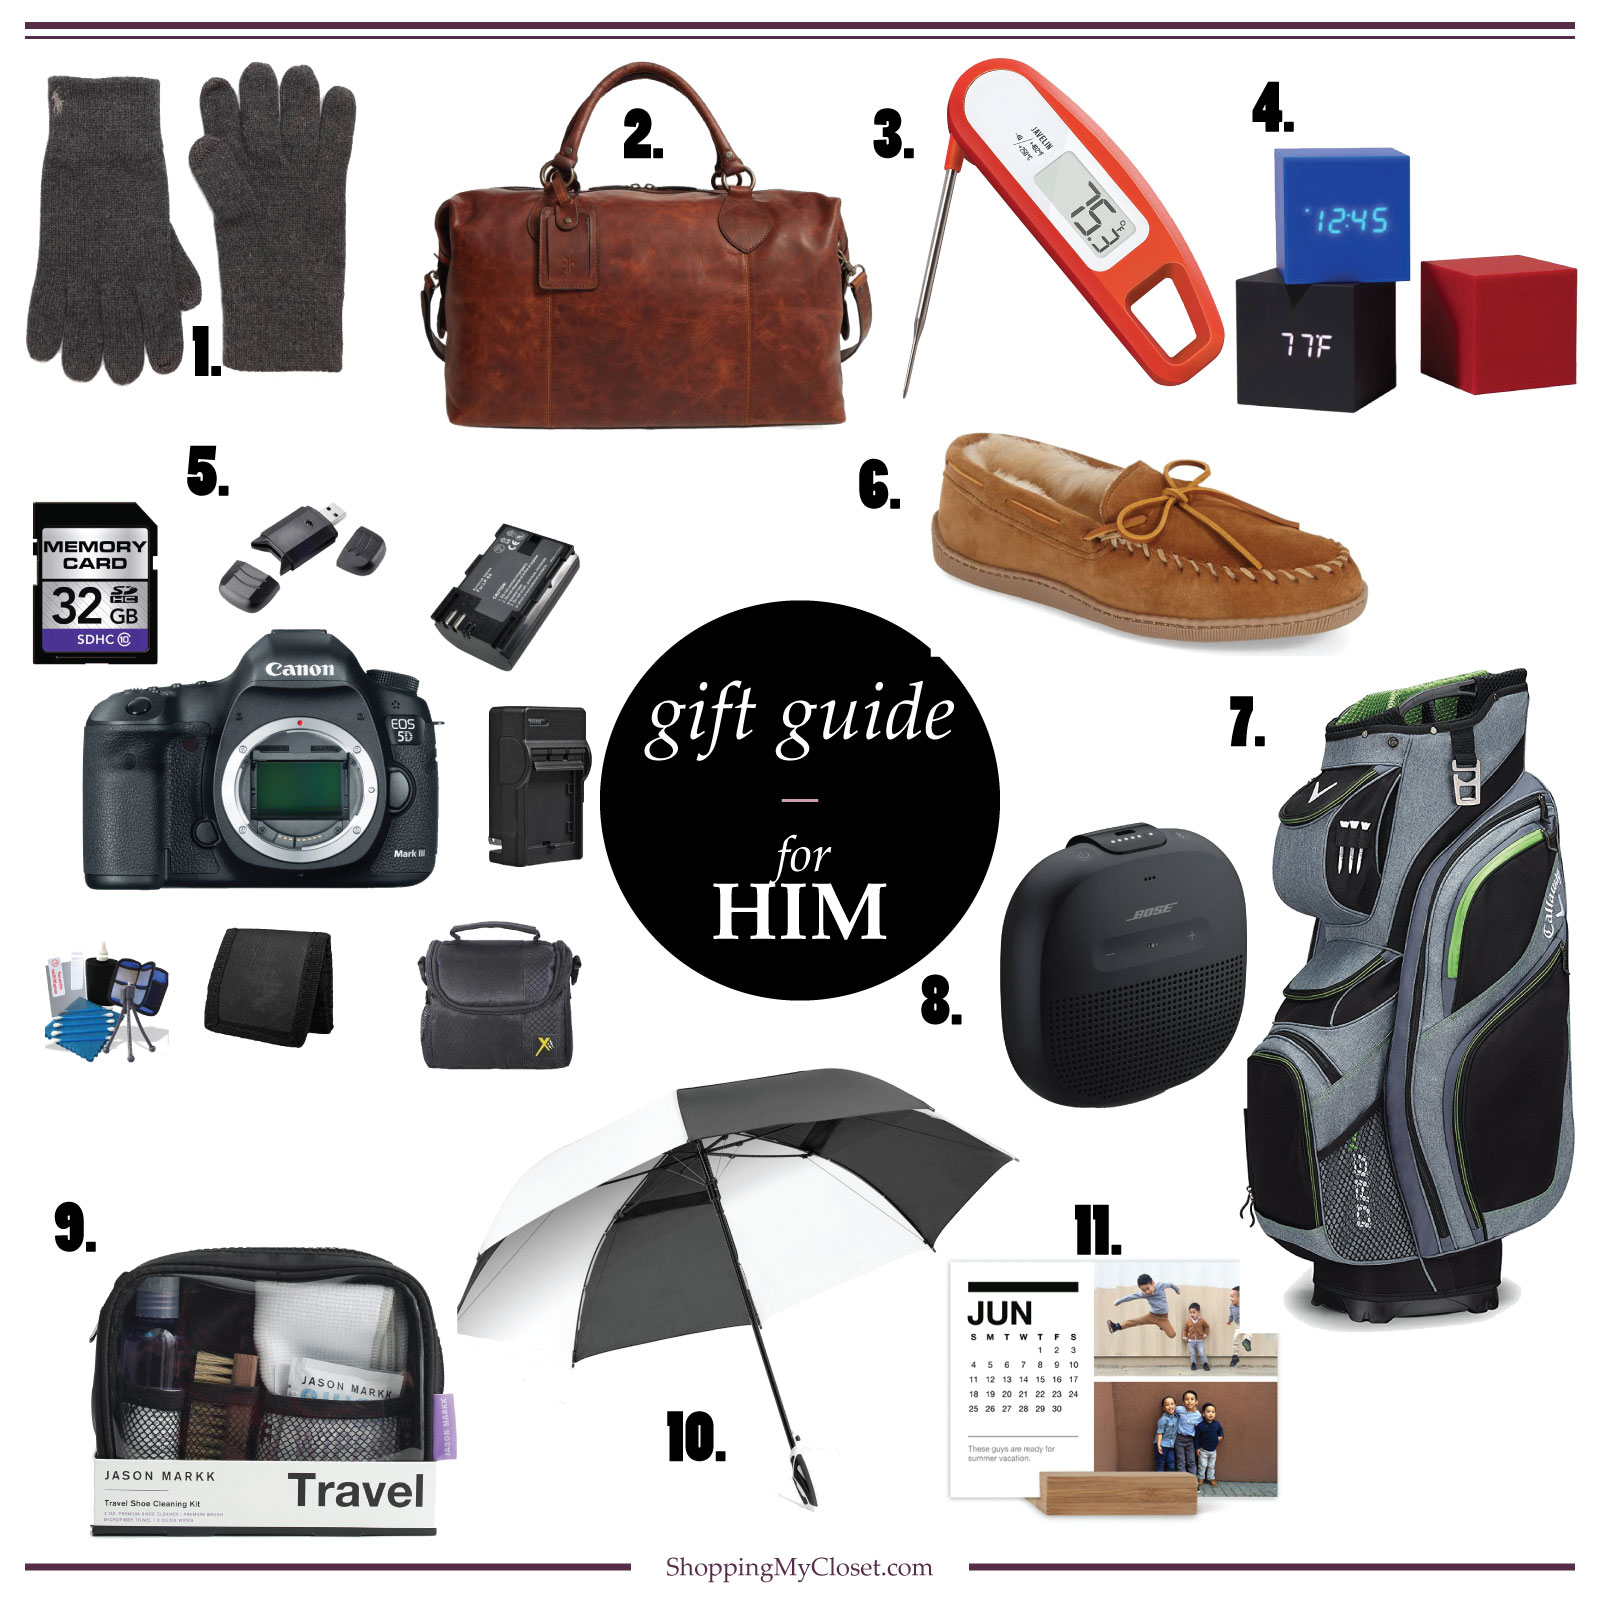 For him {gift guide} | see all the ideas at www.shoppingmycloset.com  #holidaygiftguide #giftguide #gifts #holidaygifts